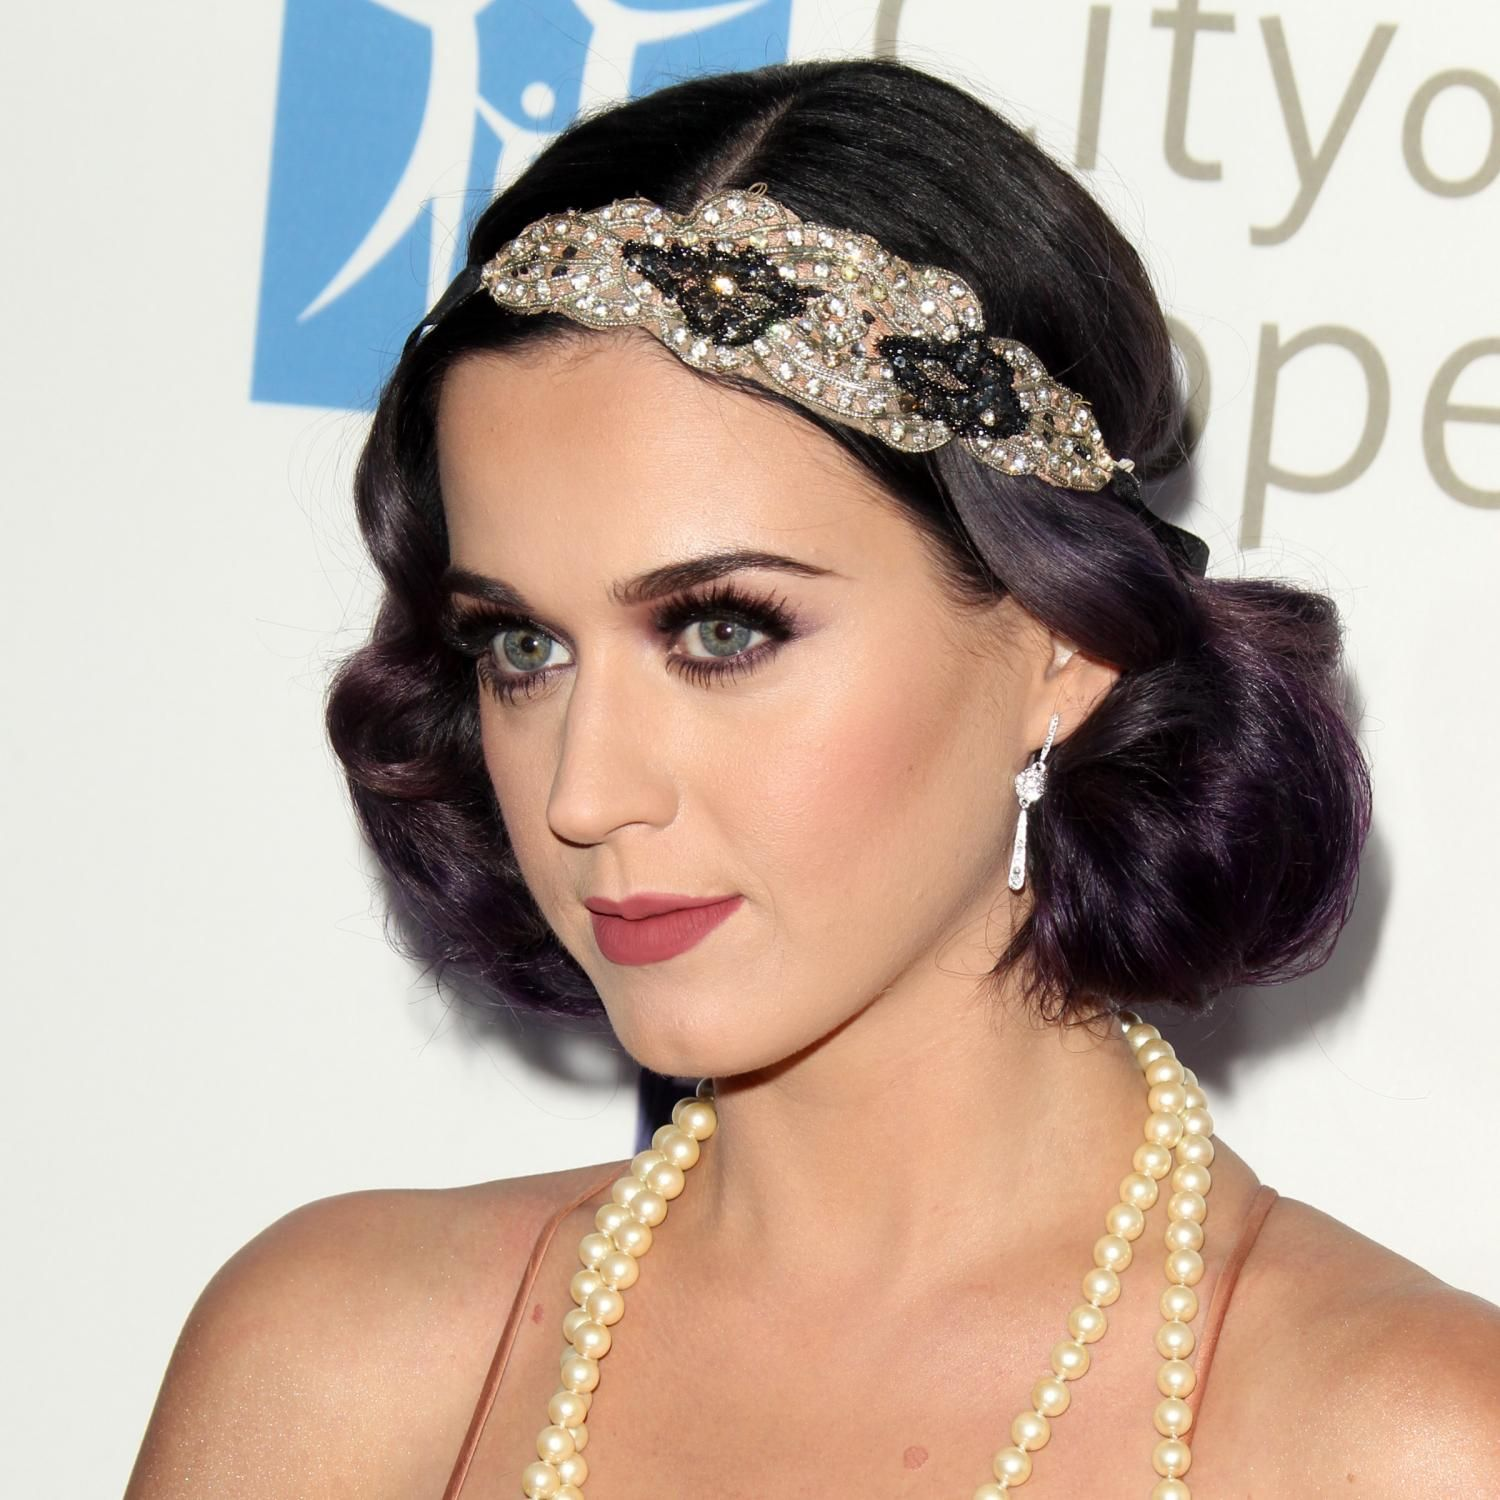 Great Gatsby Hair (With images) | Gatsby hair, Great ...